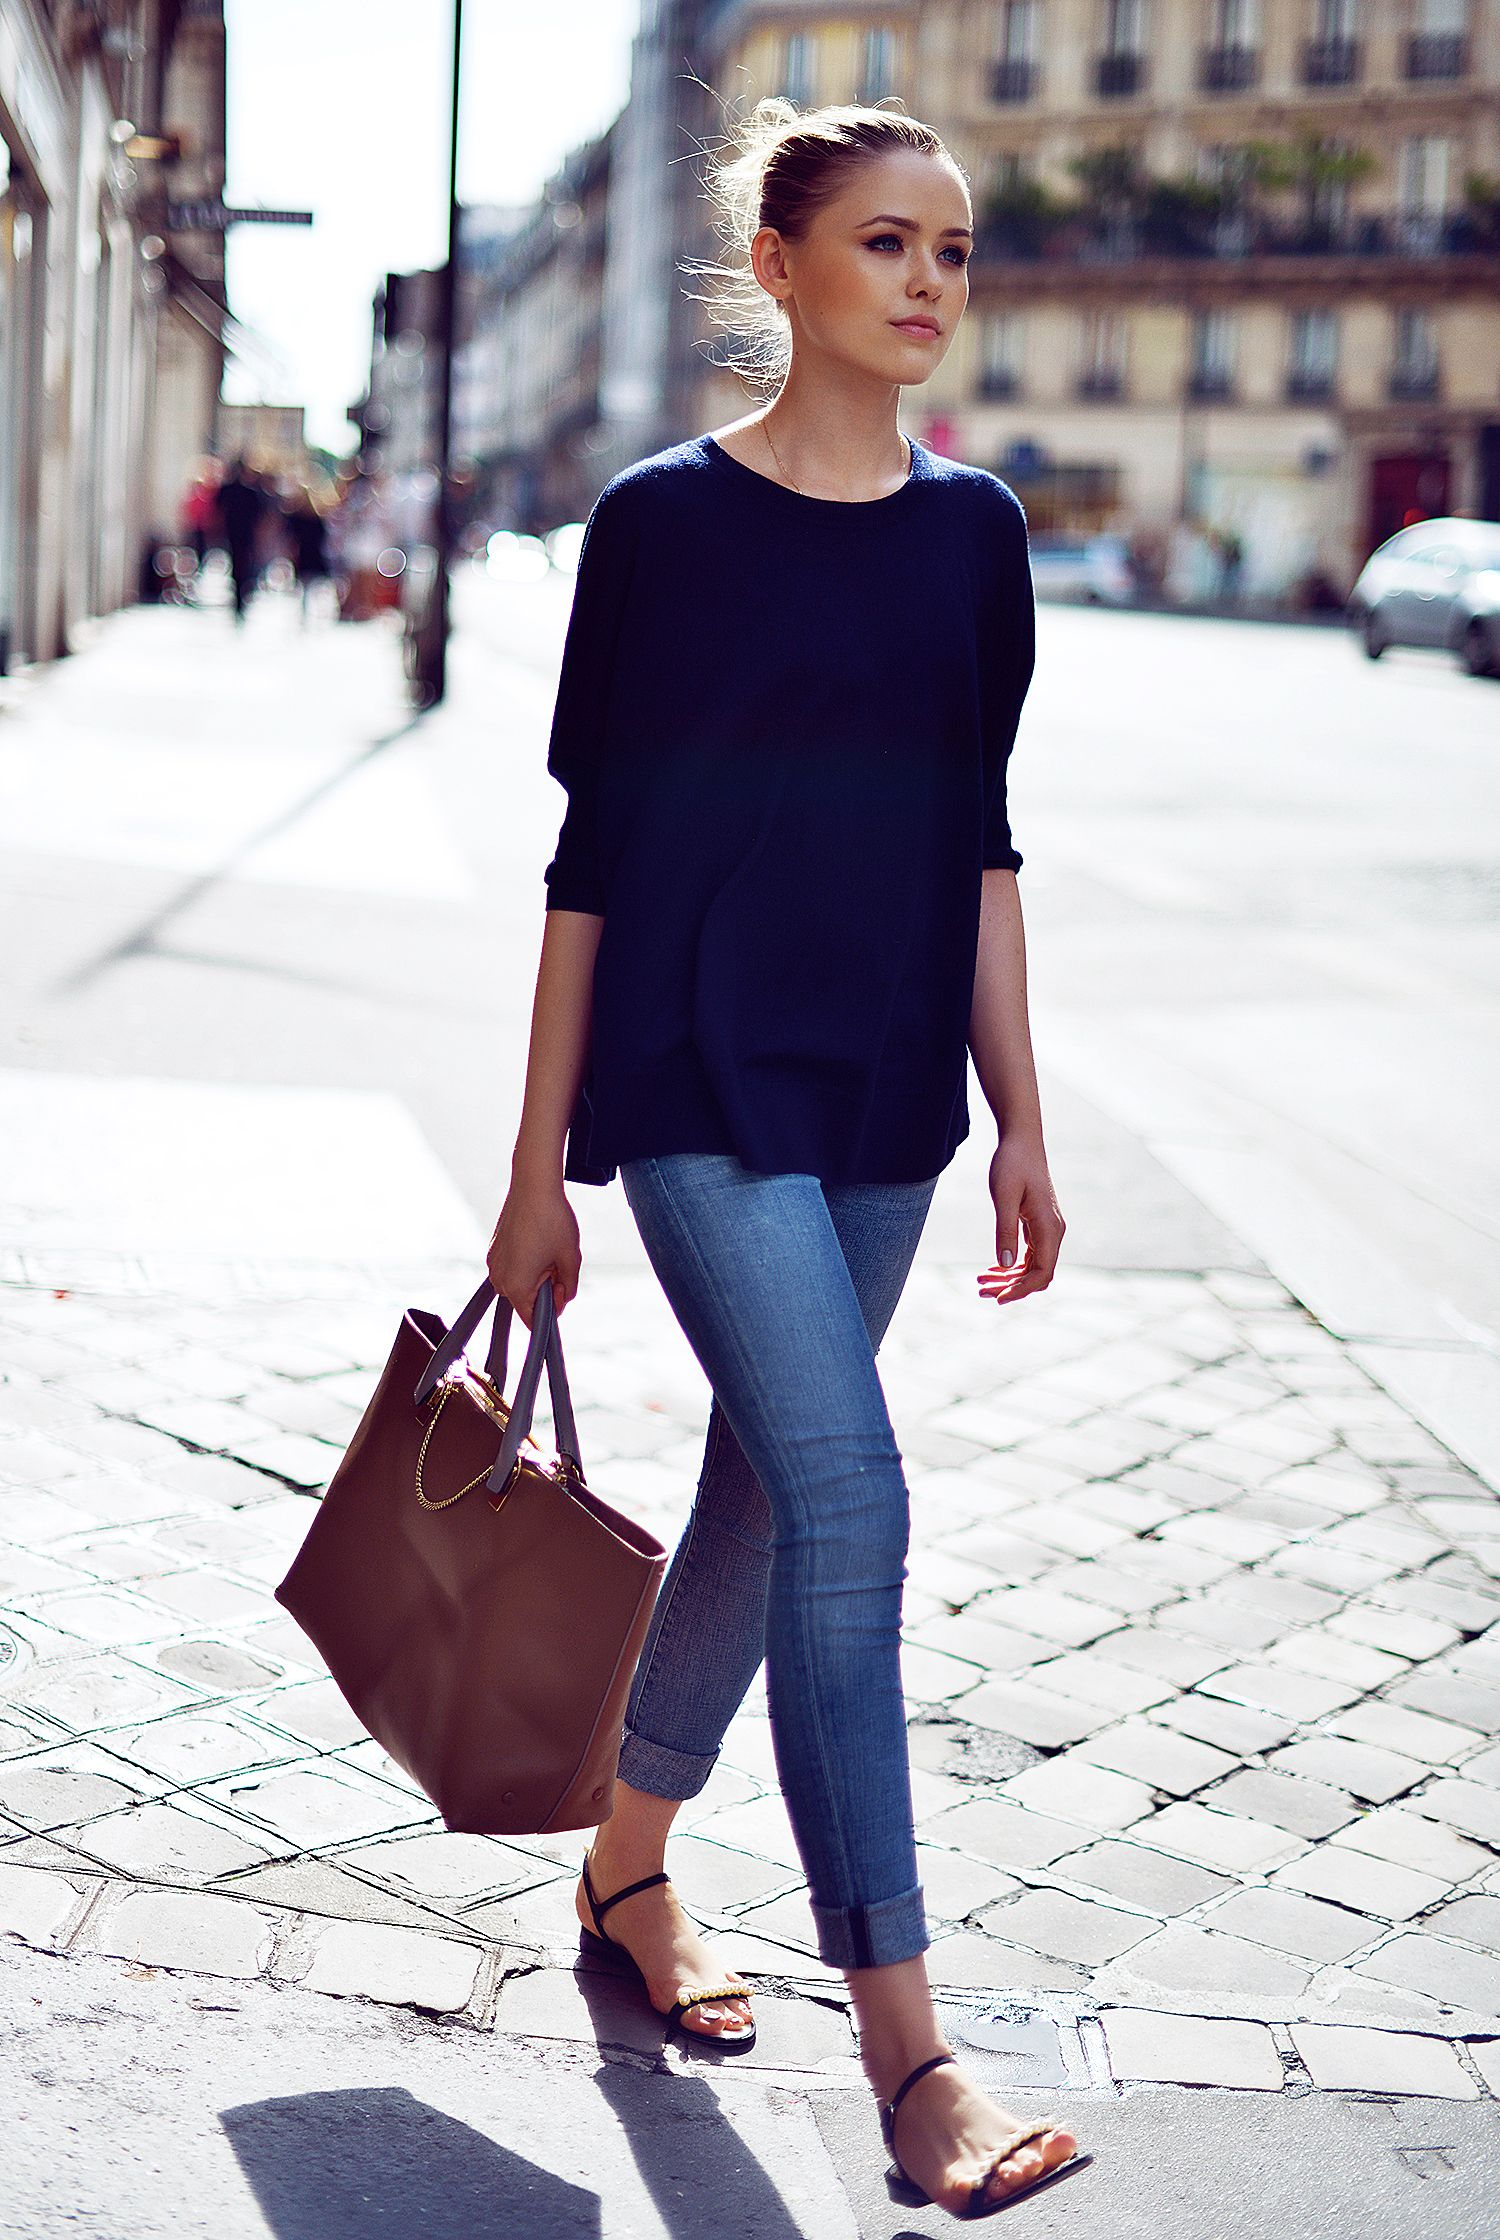 navy top, skinny jeans, flat sandals effortless street